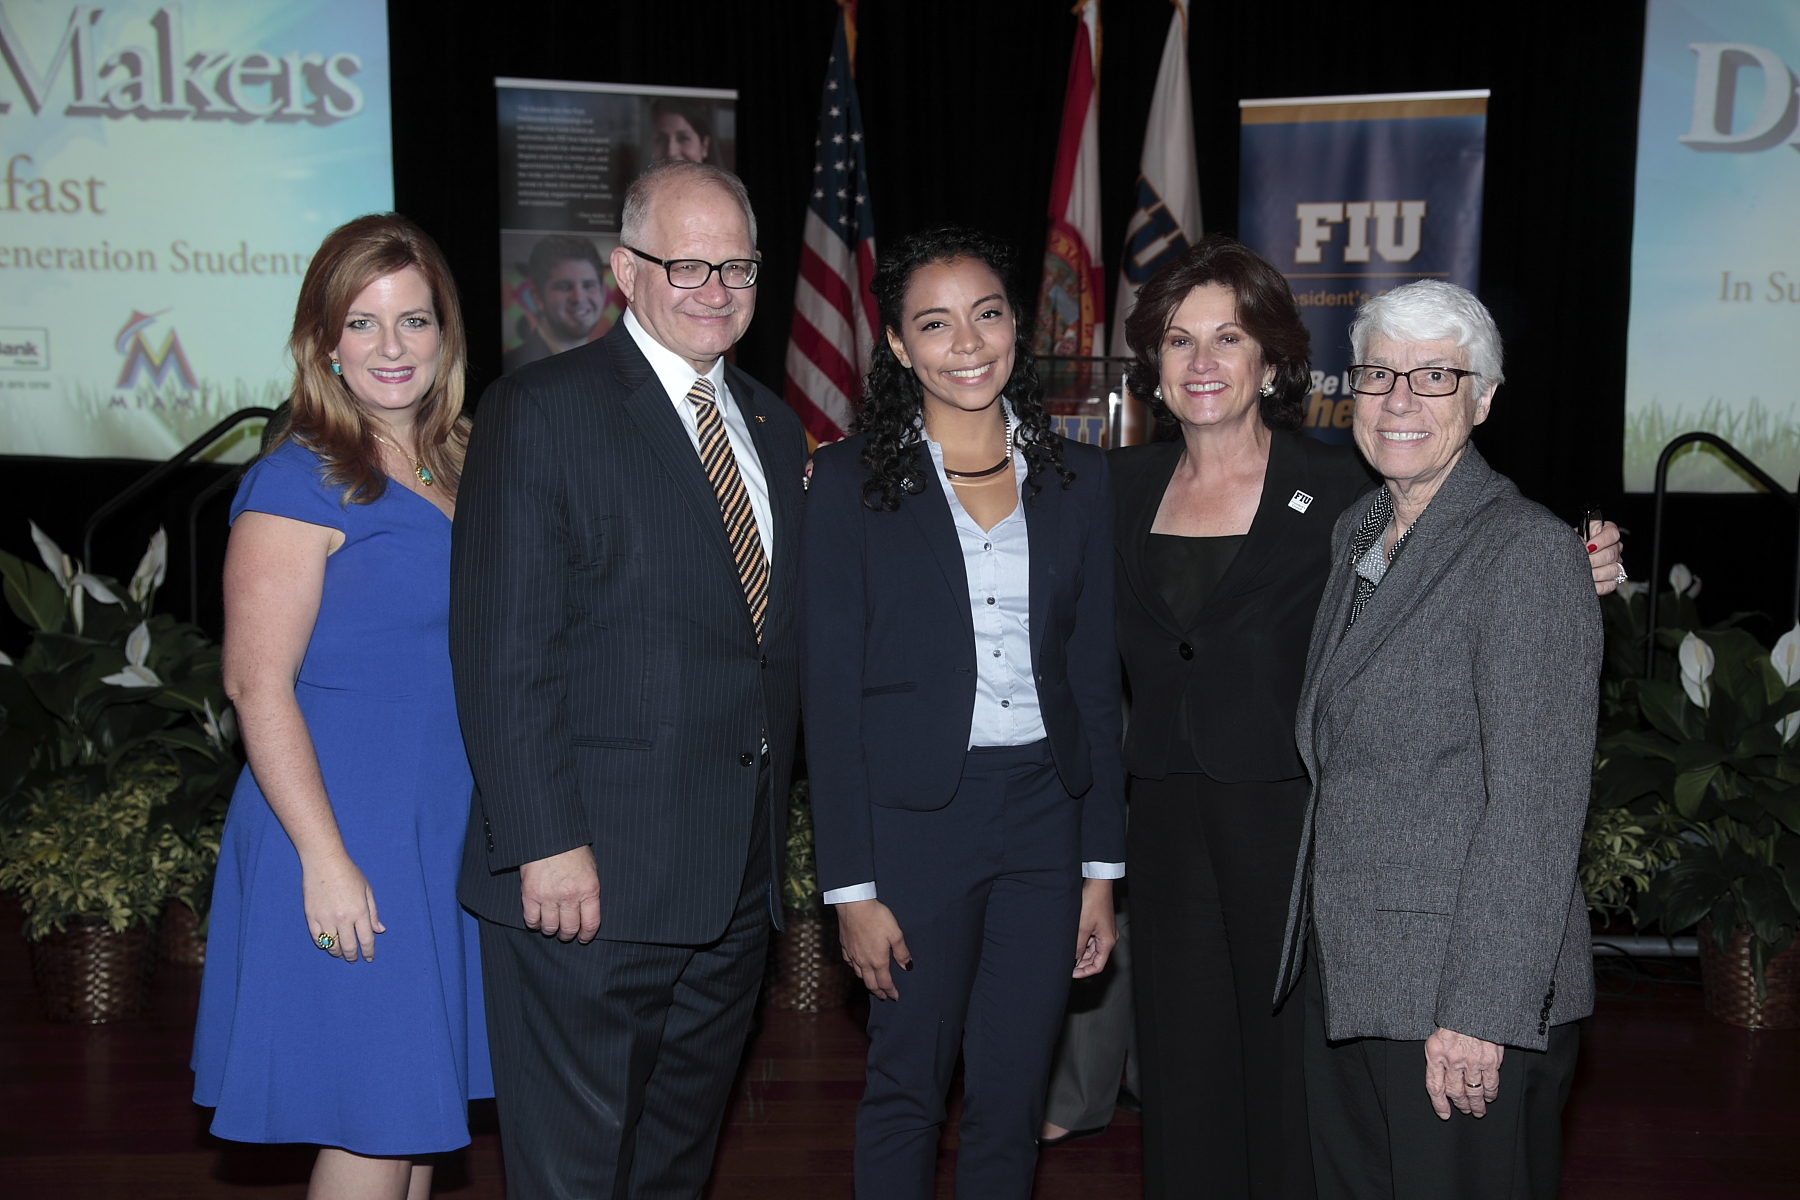 """Lourdes """"Luly"""" Balepogi, chair-elect of the President's Council and chair of the First Generation Task Force, right; with FIU President Mark B. Rosenberg; Bianca Ordoñez, the event's main student speaker; Mary Hoelle, chair of the President's Council; and Lesley Northup, FIU Honors College Dean."""